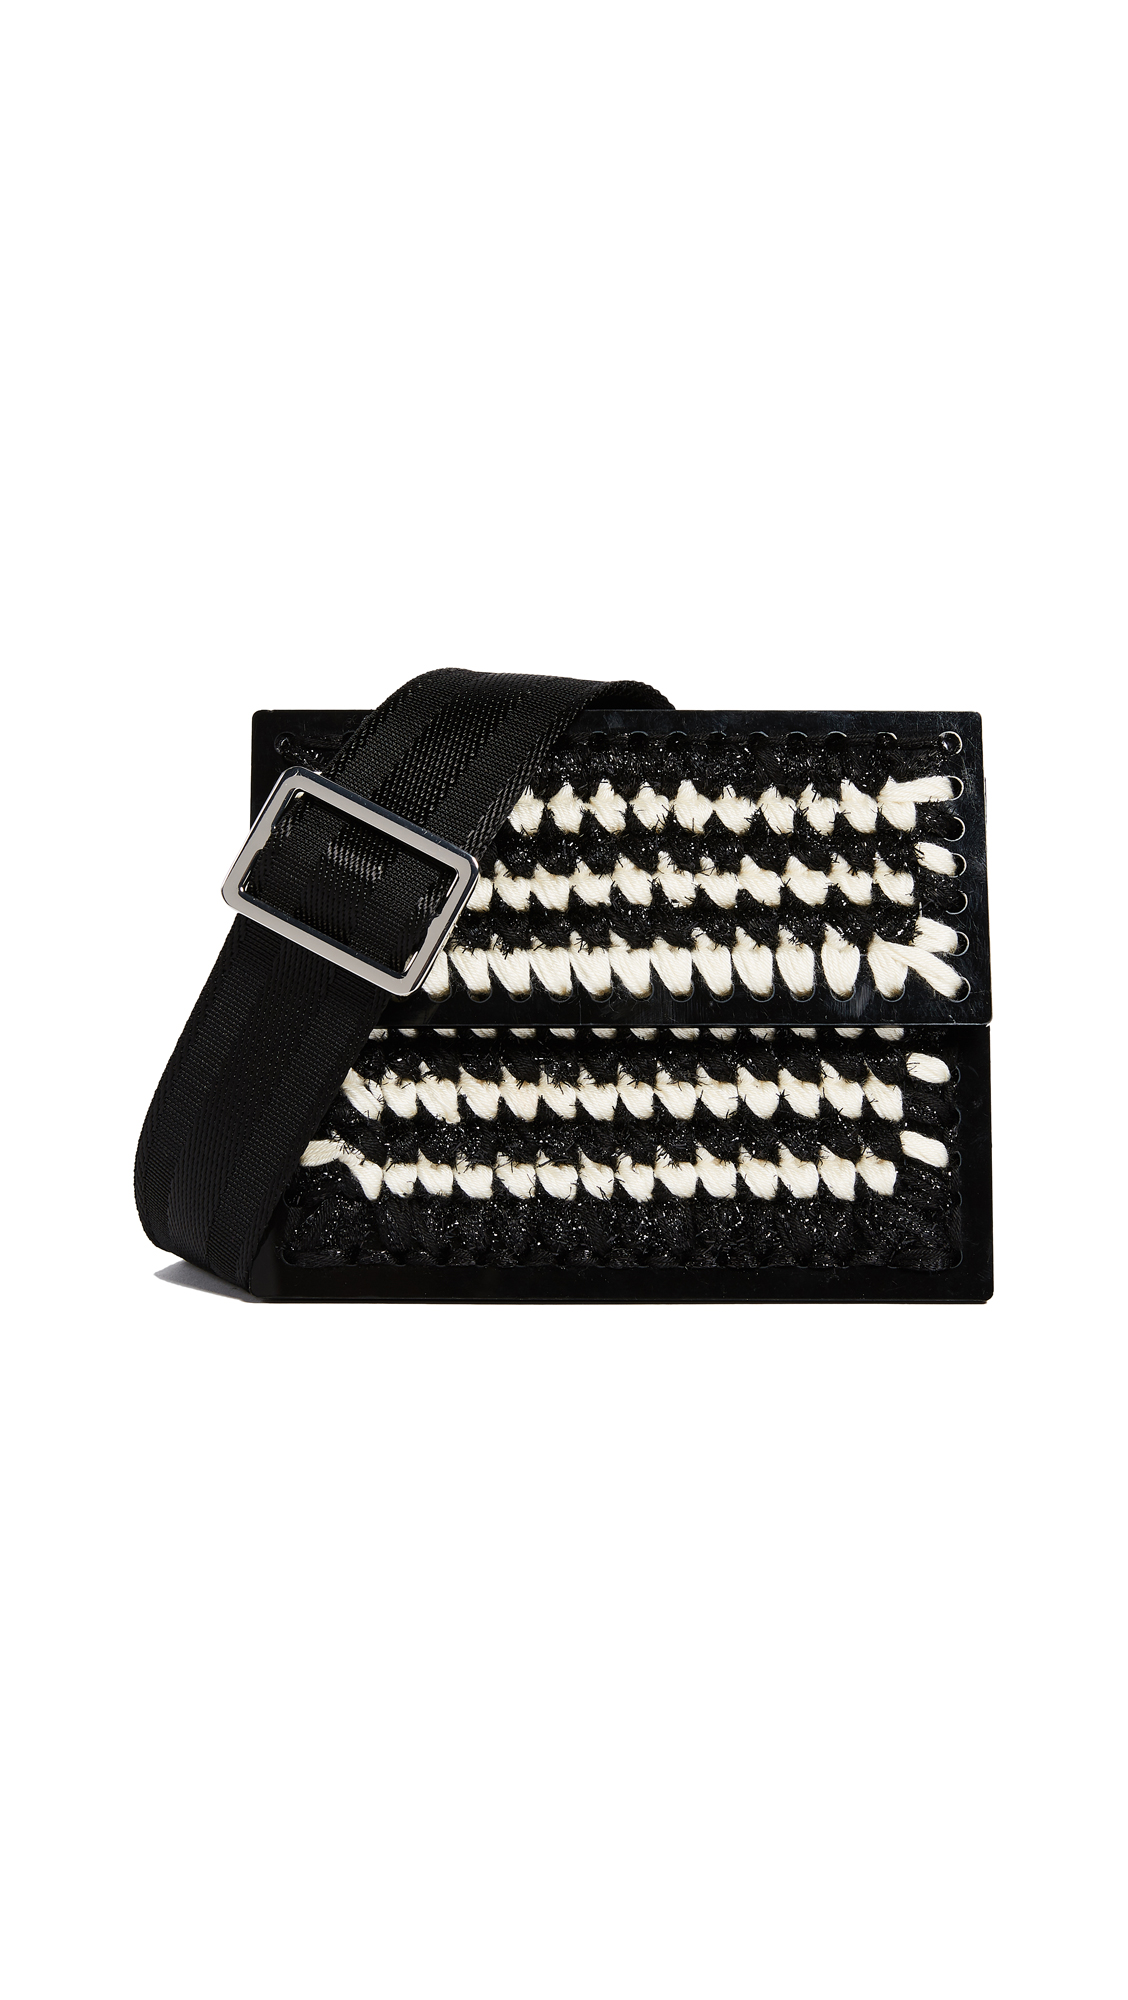 0711 Le Secretaire Copacabana Clutch - Black/White